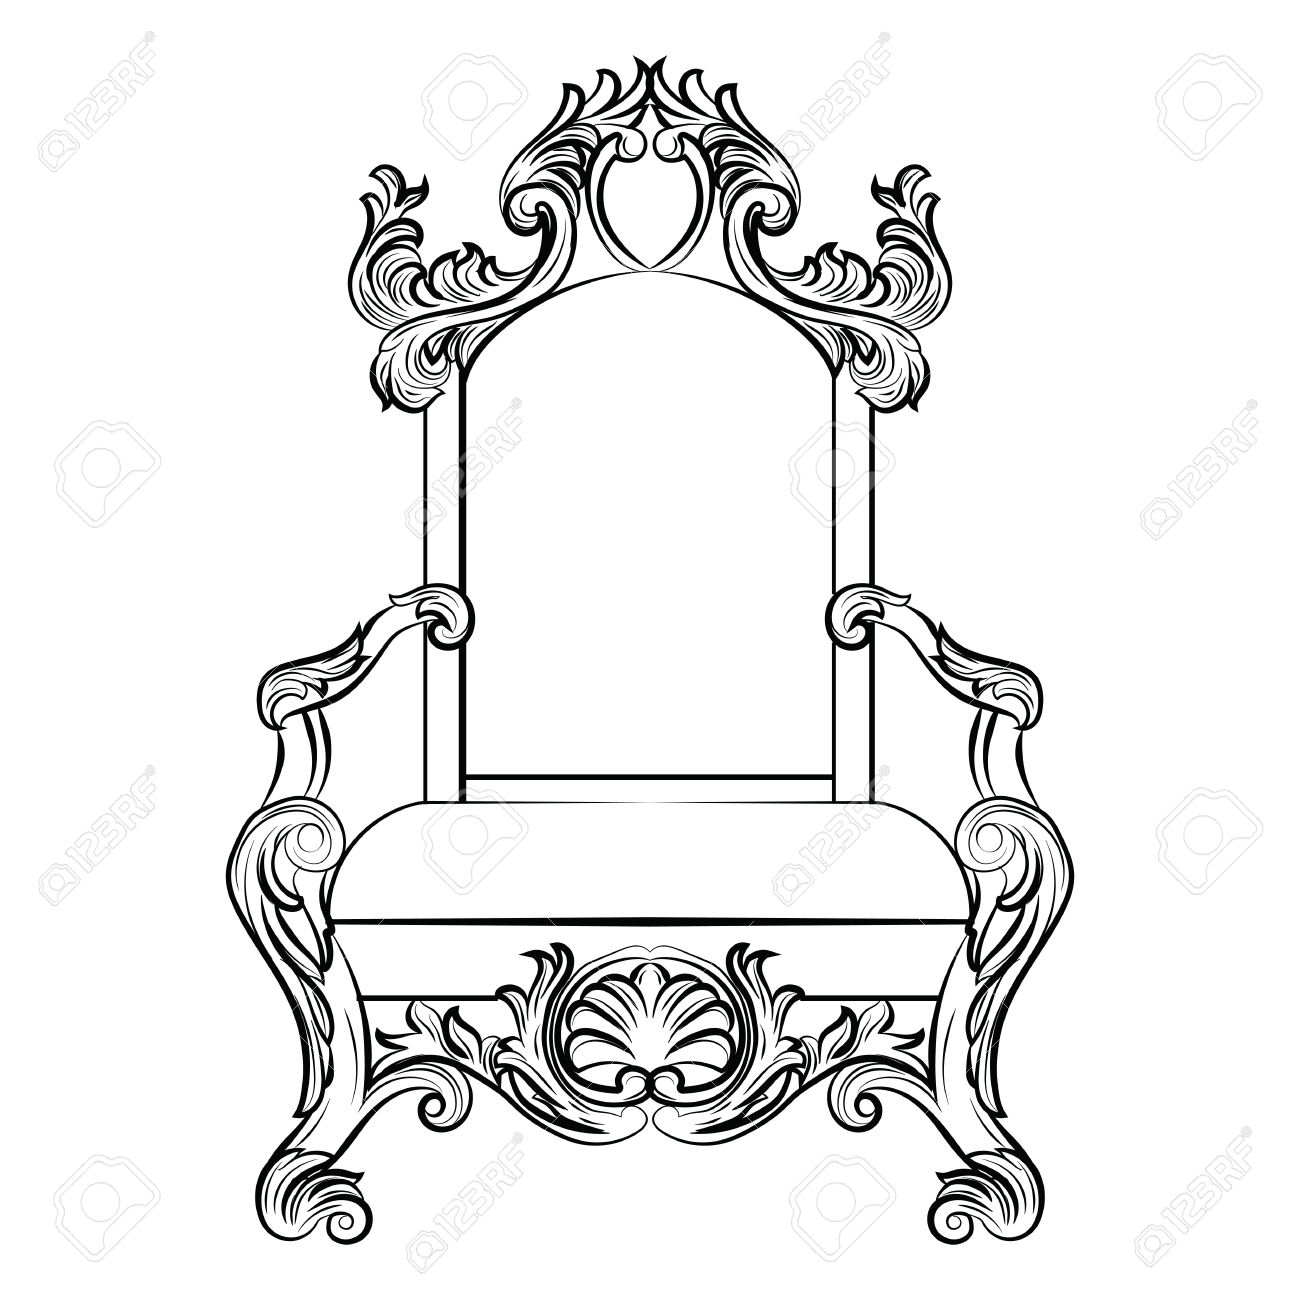 King On Throne Drawing At Getdrawings